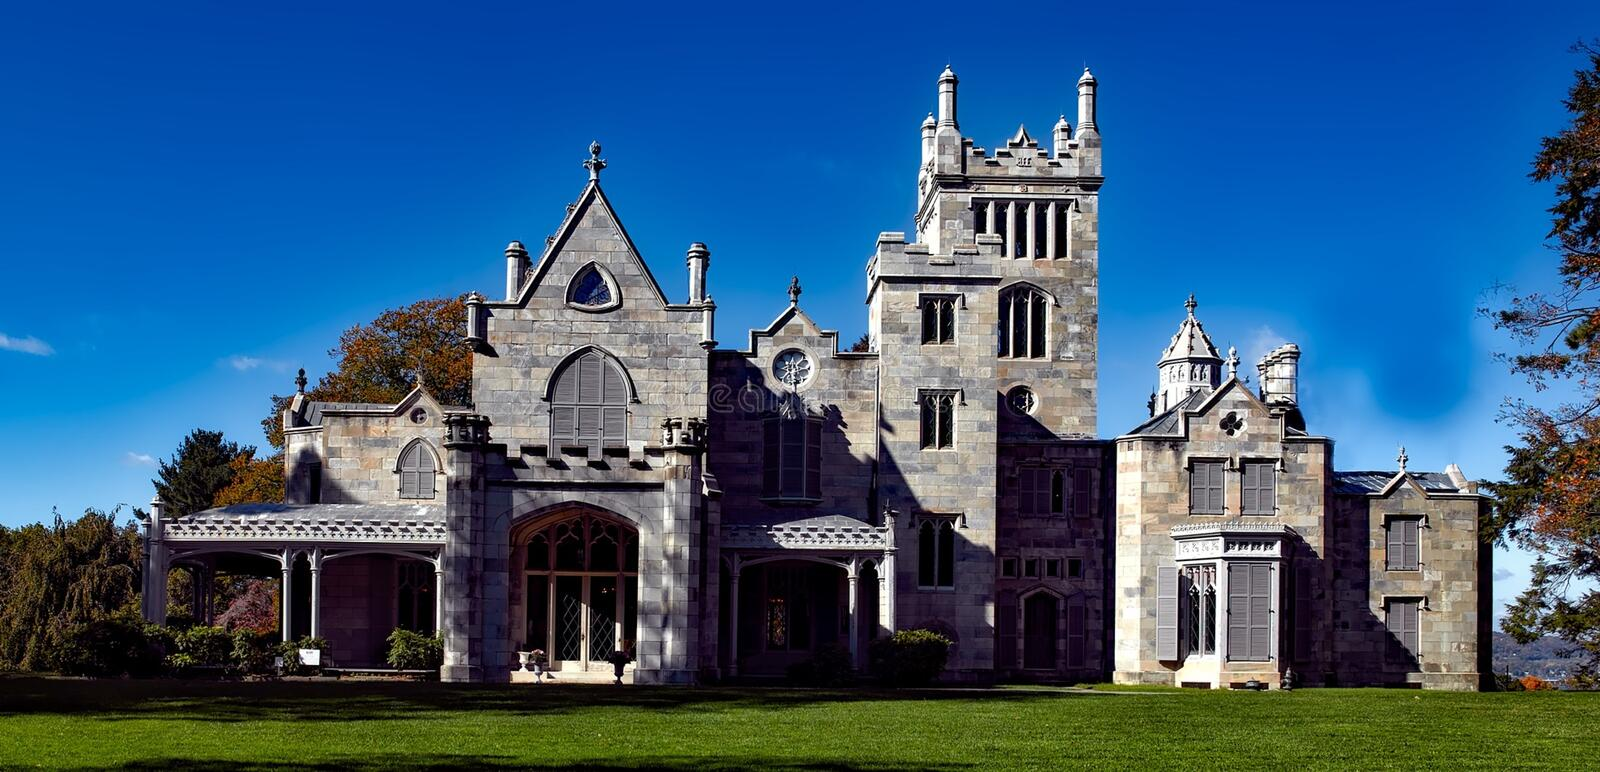 Mansion on green lawn, New York stock photo